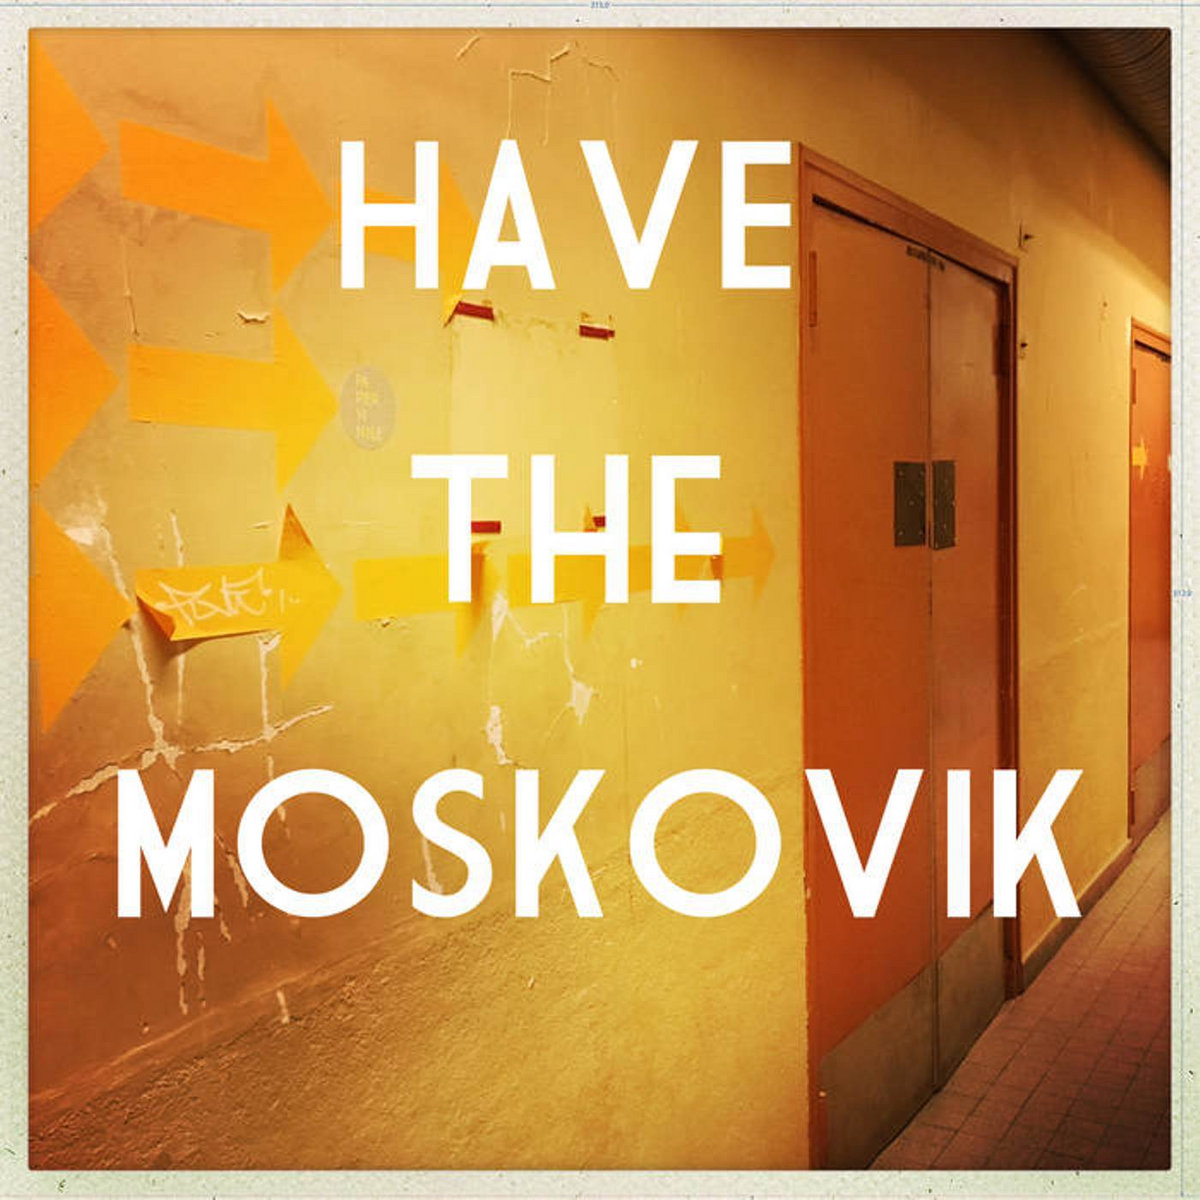 HAVE THE MOSCOVIK - Papier Vinyle